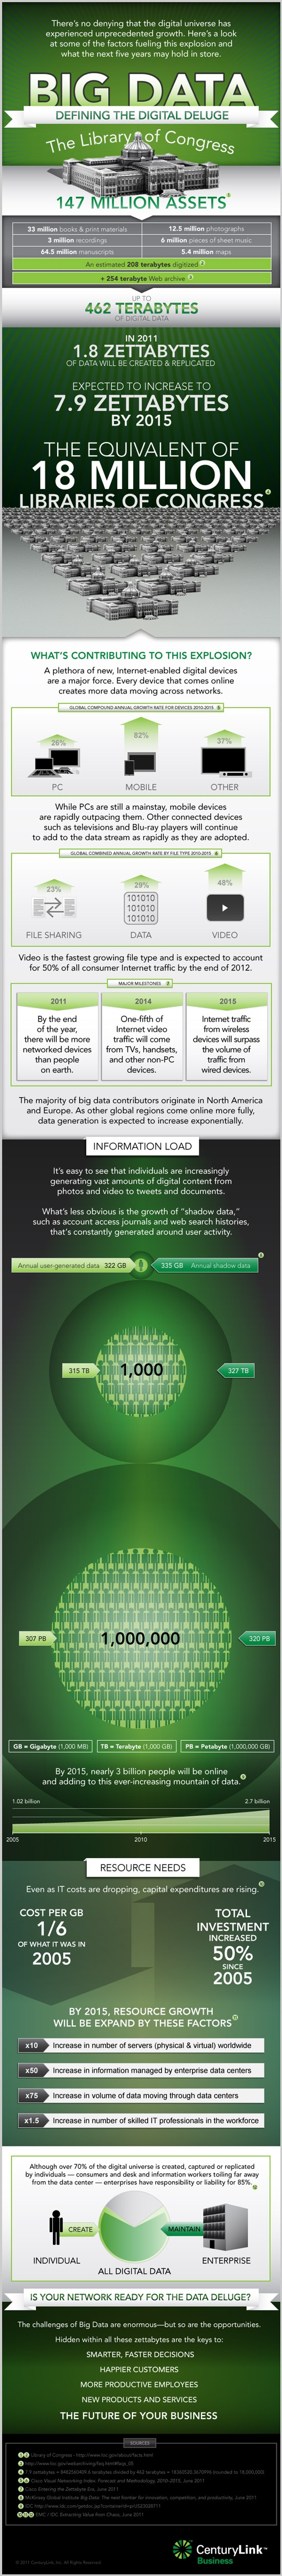 Big Data - How big is it and how big will it get?